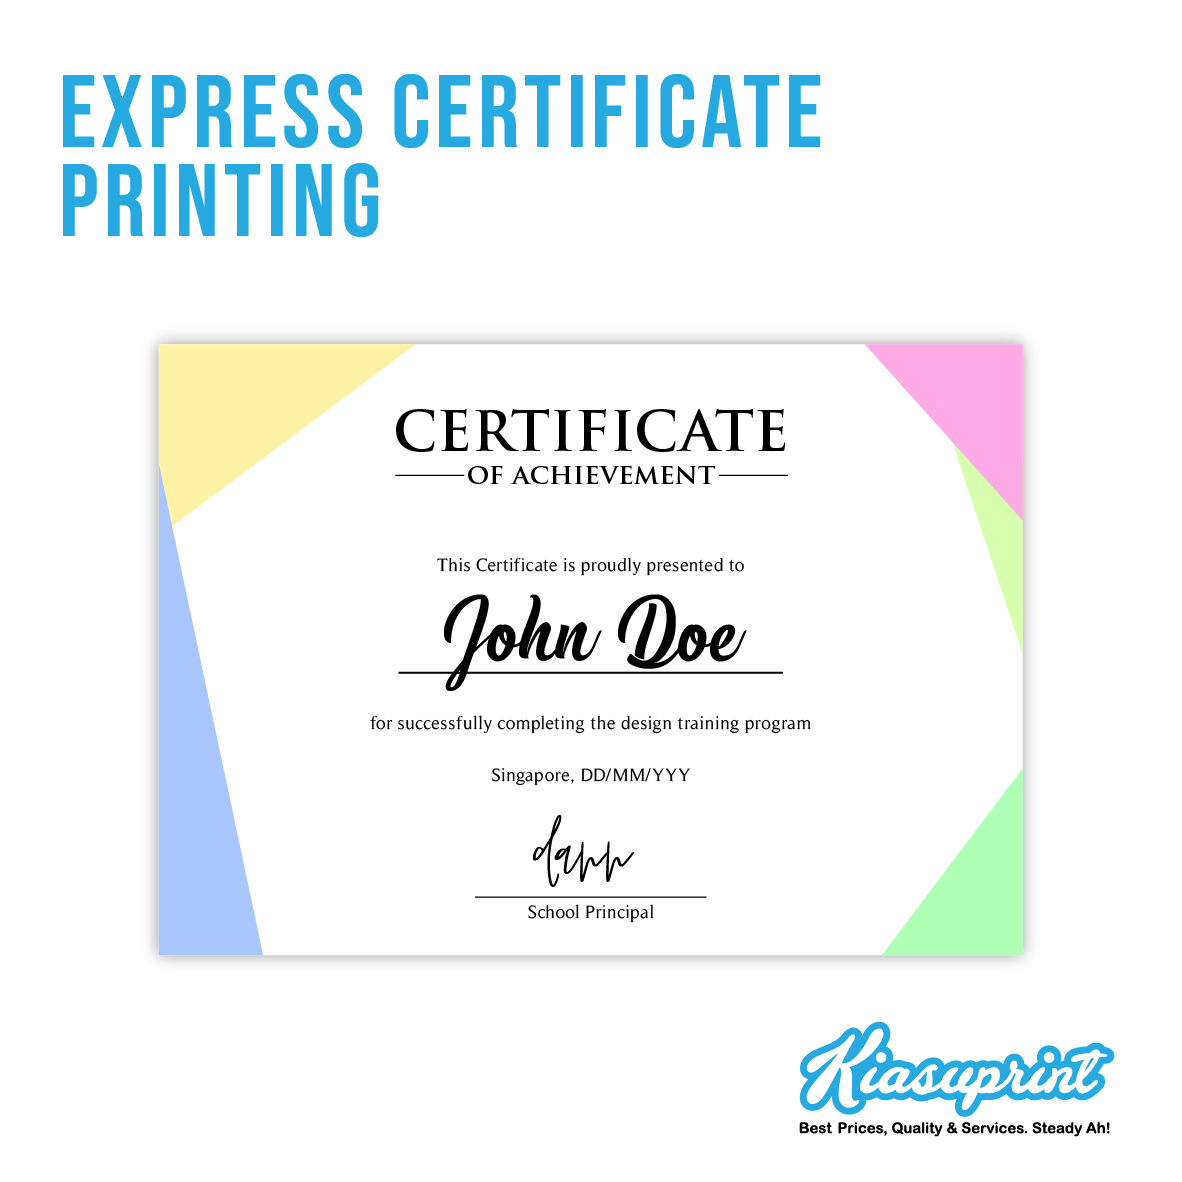 Certificate Printing In Singapore